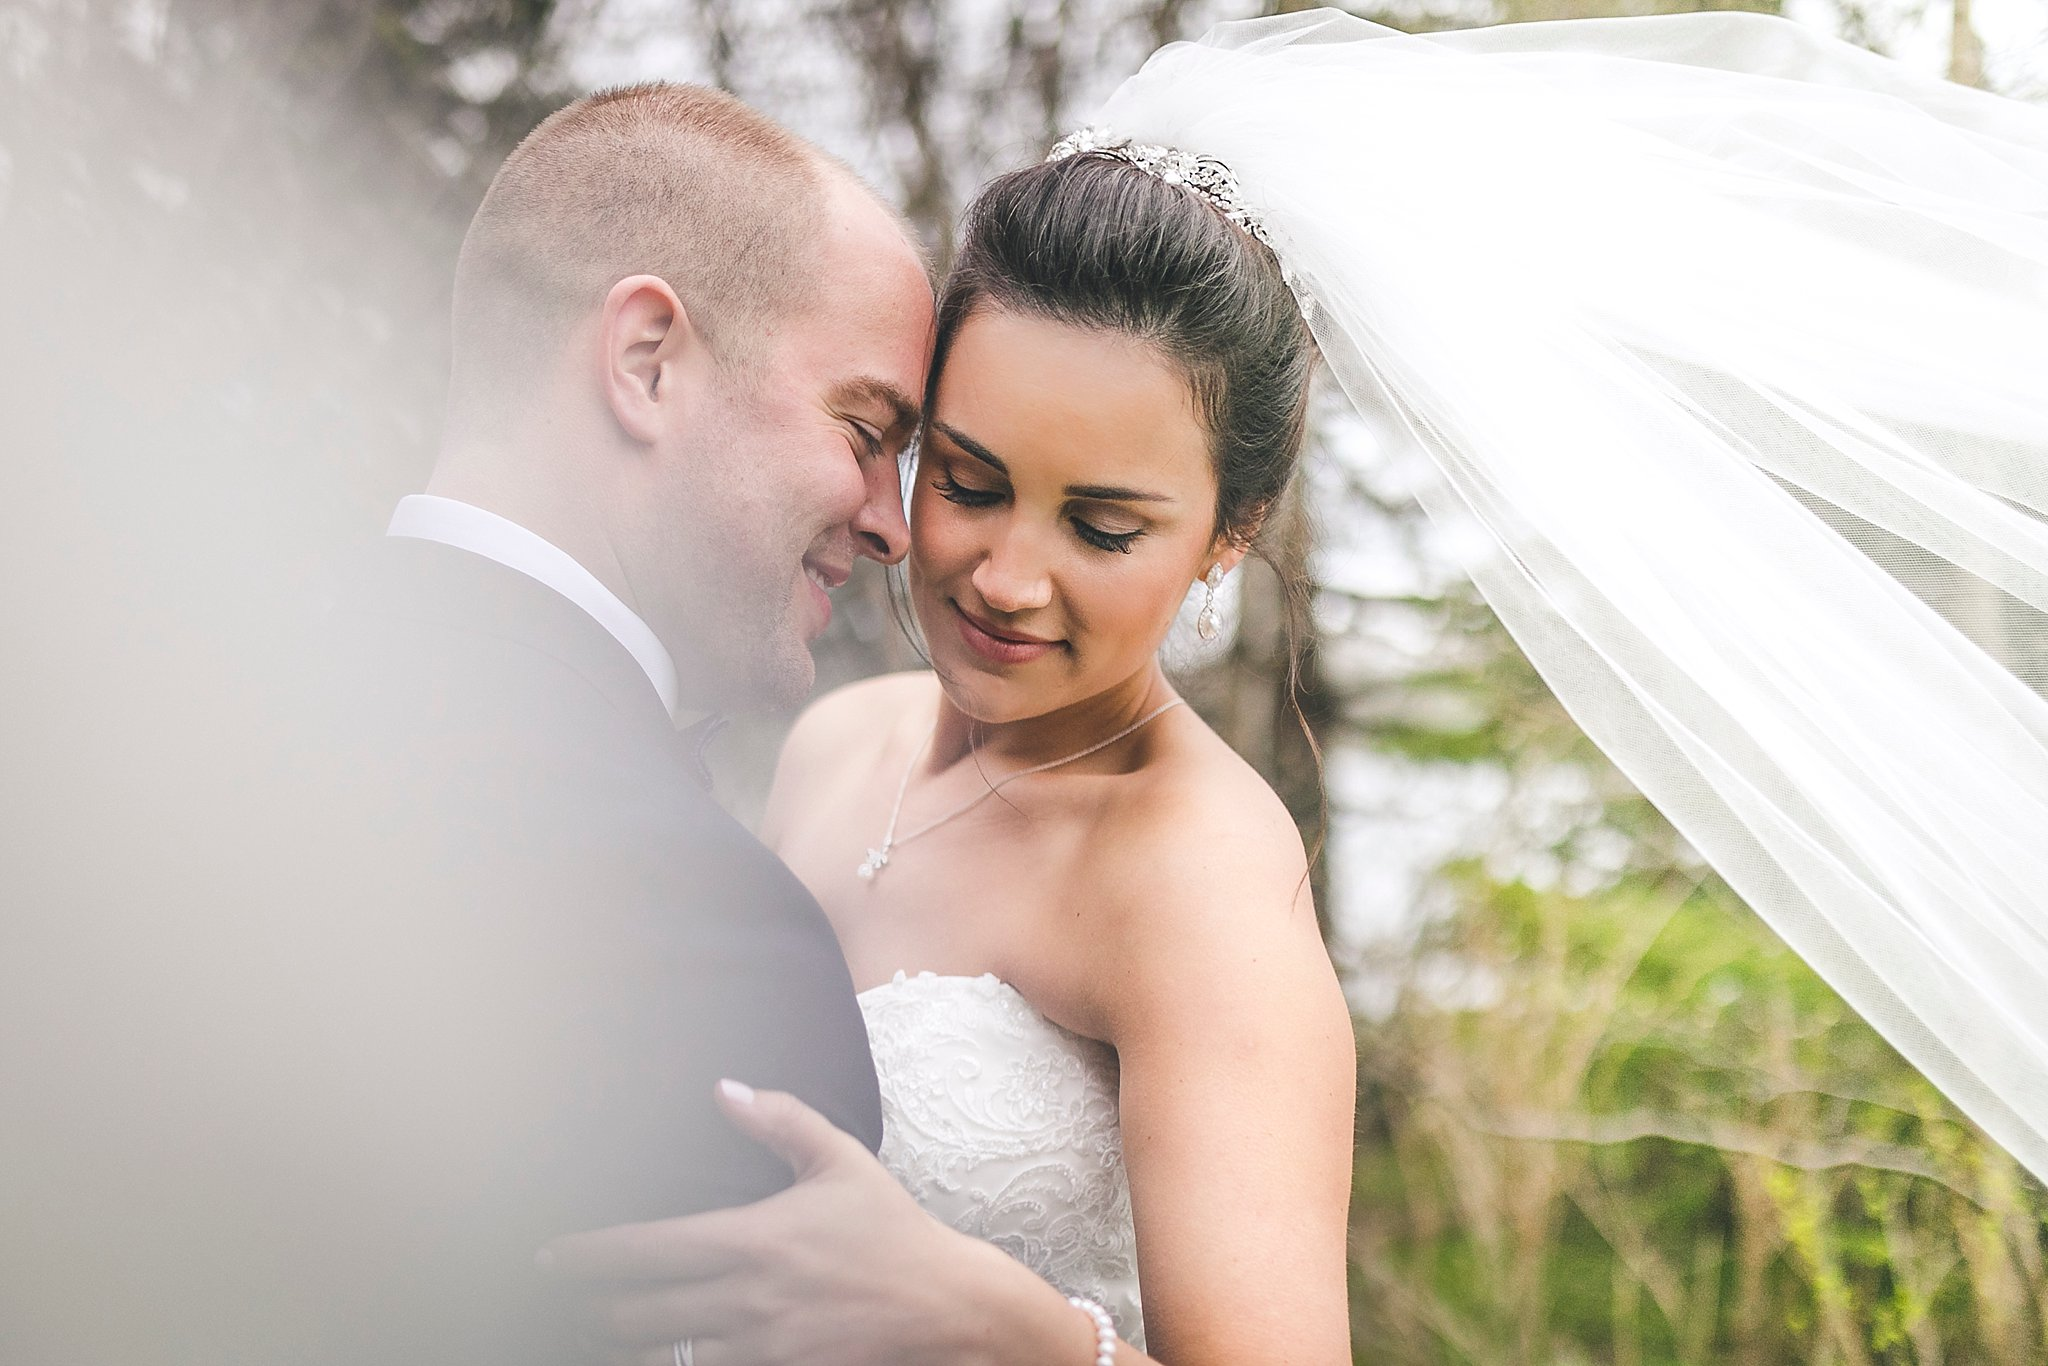 Intimate moment between Bride and Groom in Pippy Park during a St. John's, Newfoundland wedding